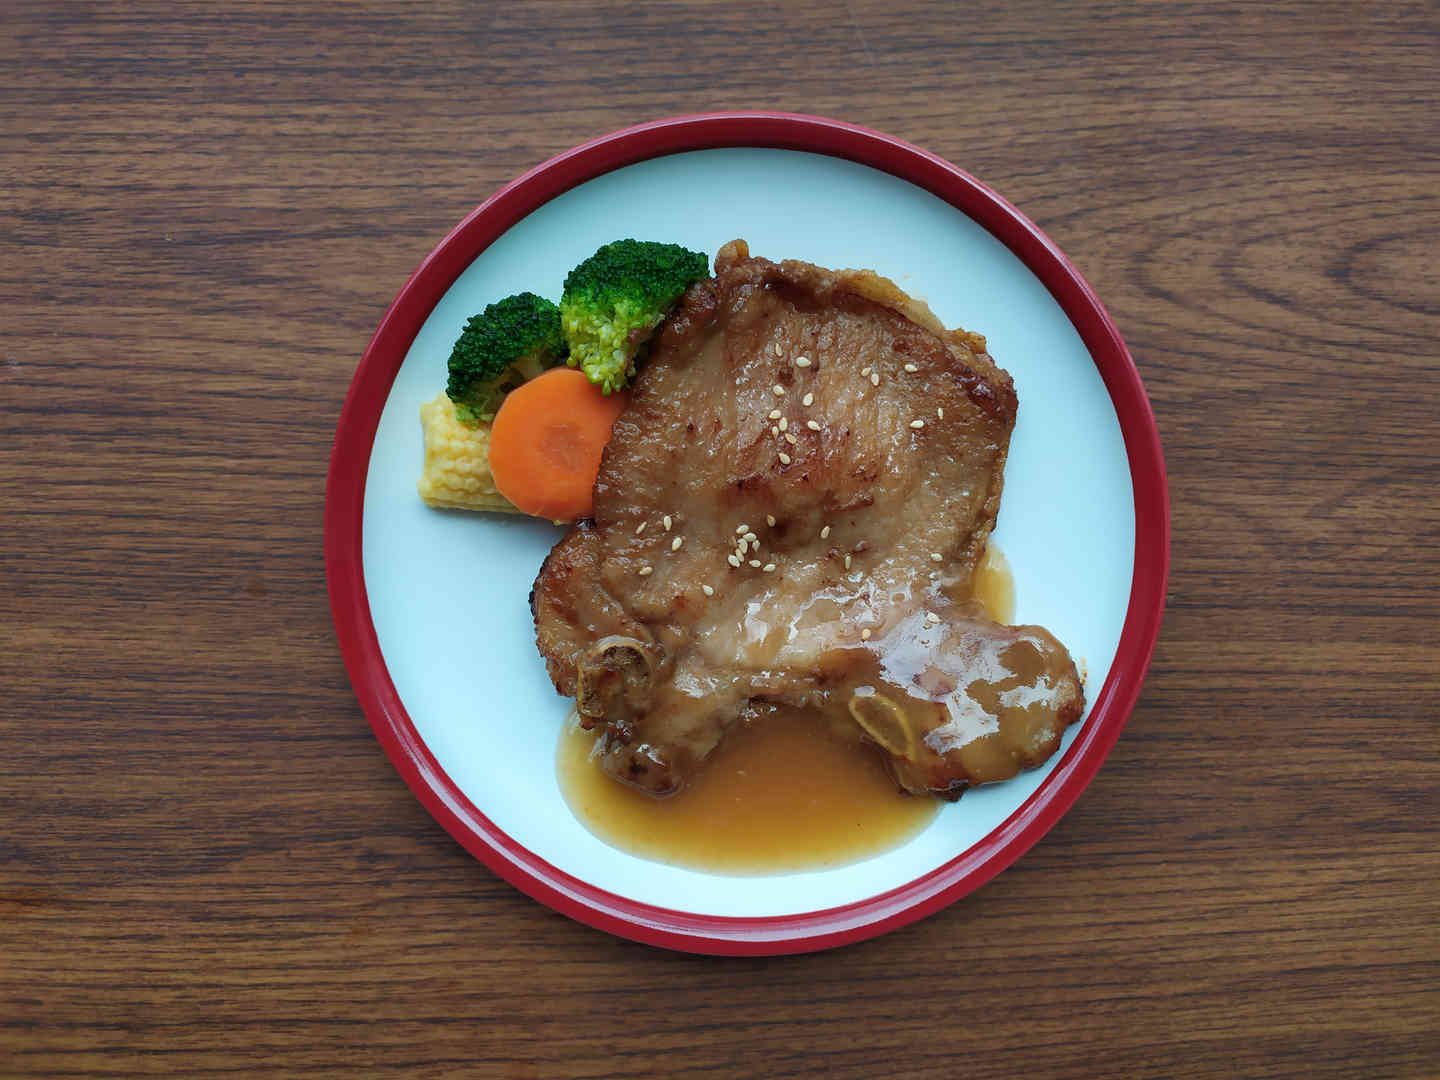 Pork Chop With White Wine Sauce